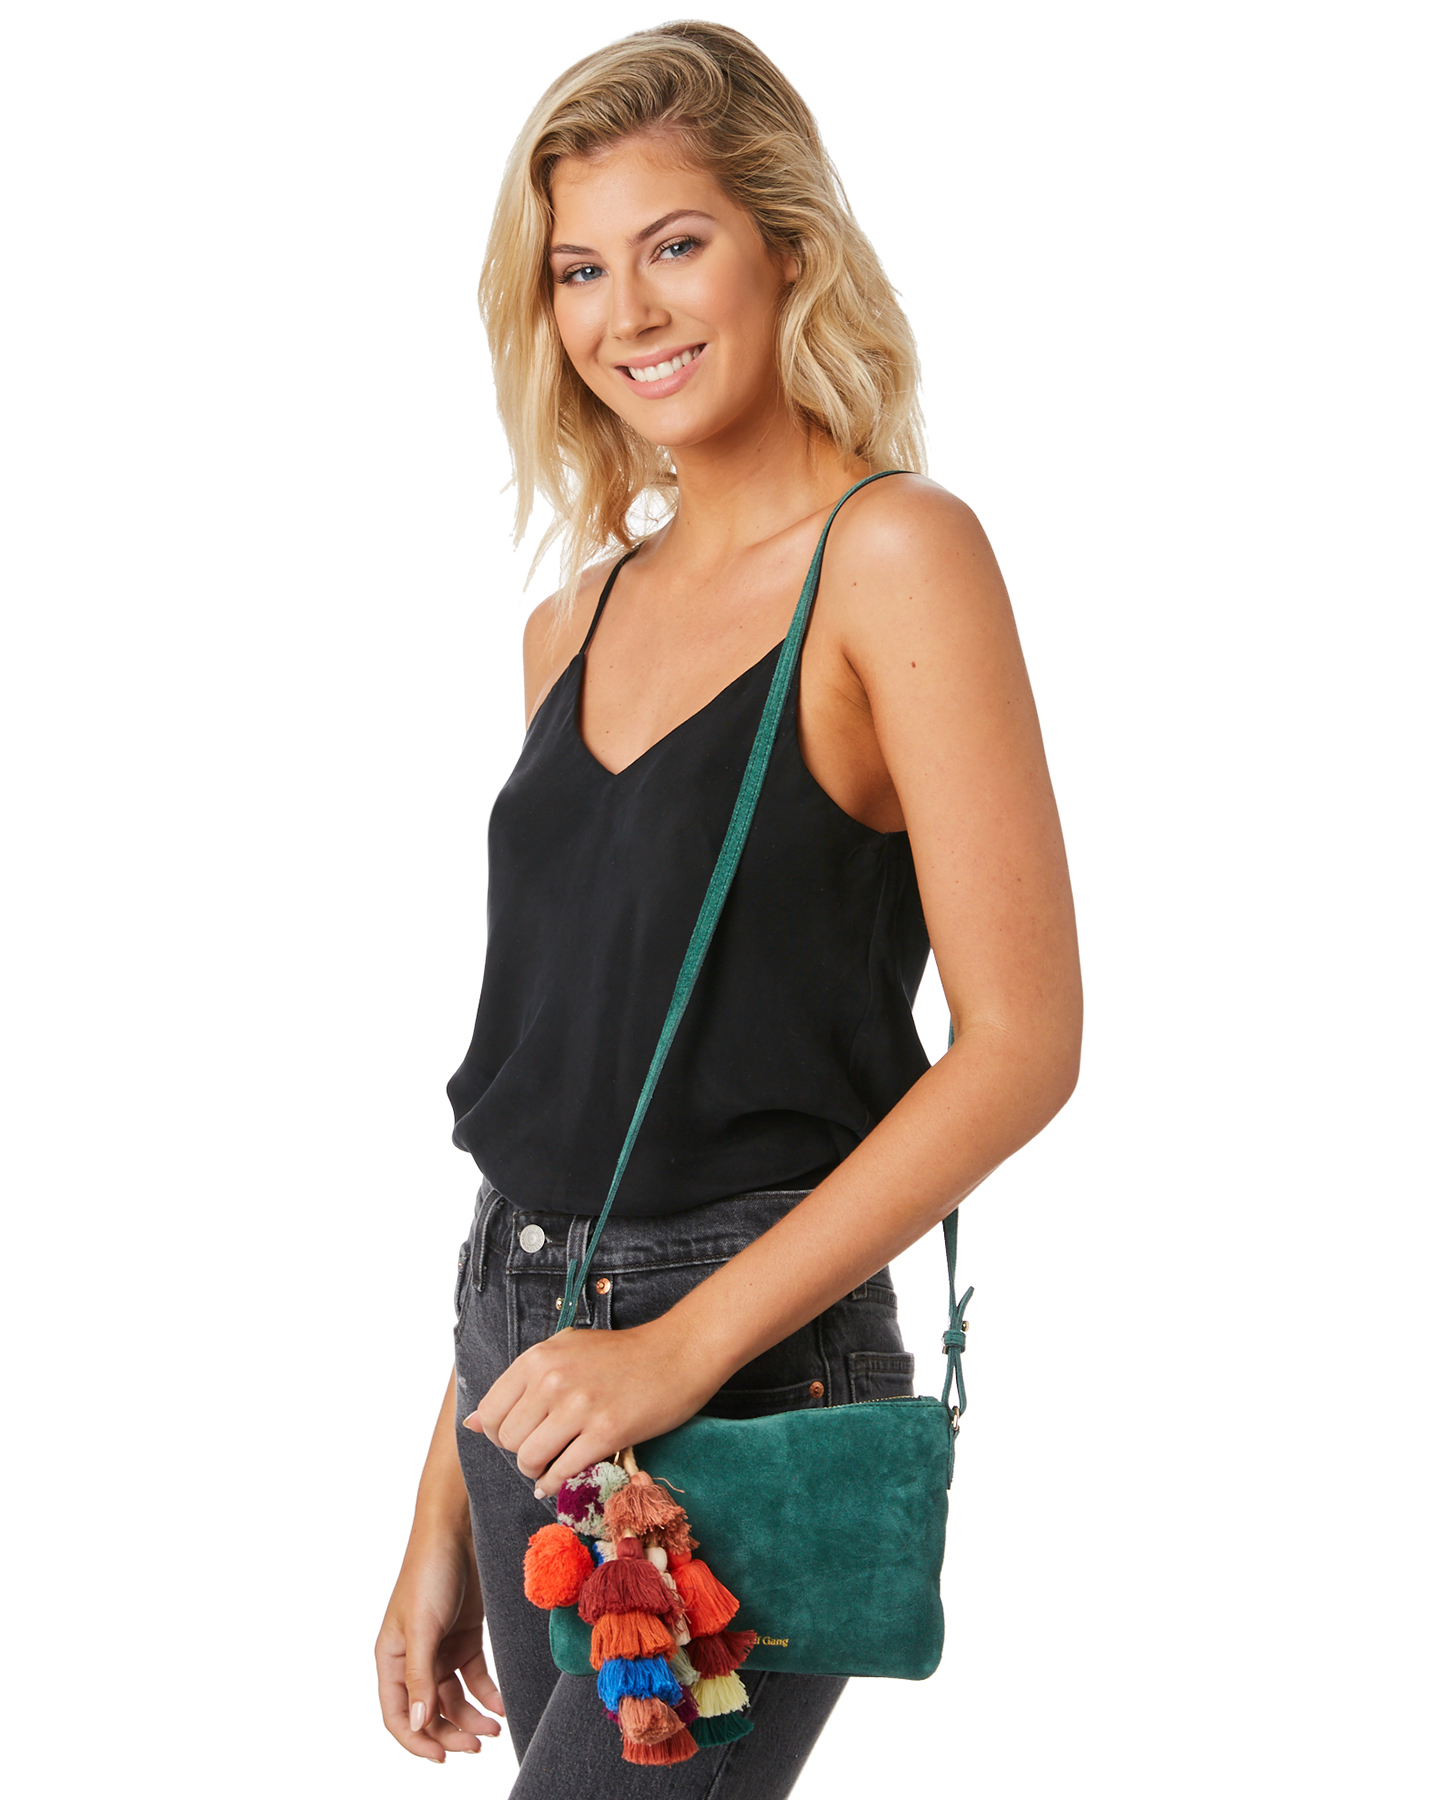 New-The-Wolf-Gang-Women-039-s-Rio-Cross-Body-Bag-Suede-Canvas-Pink thumbnail 10